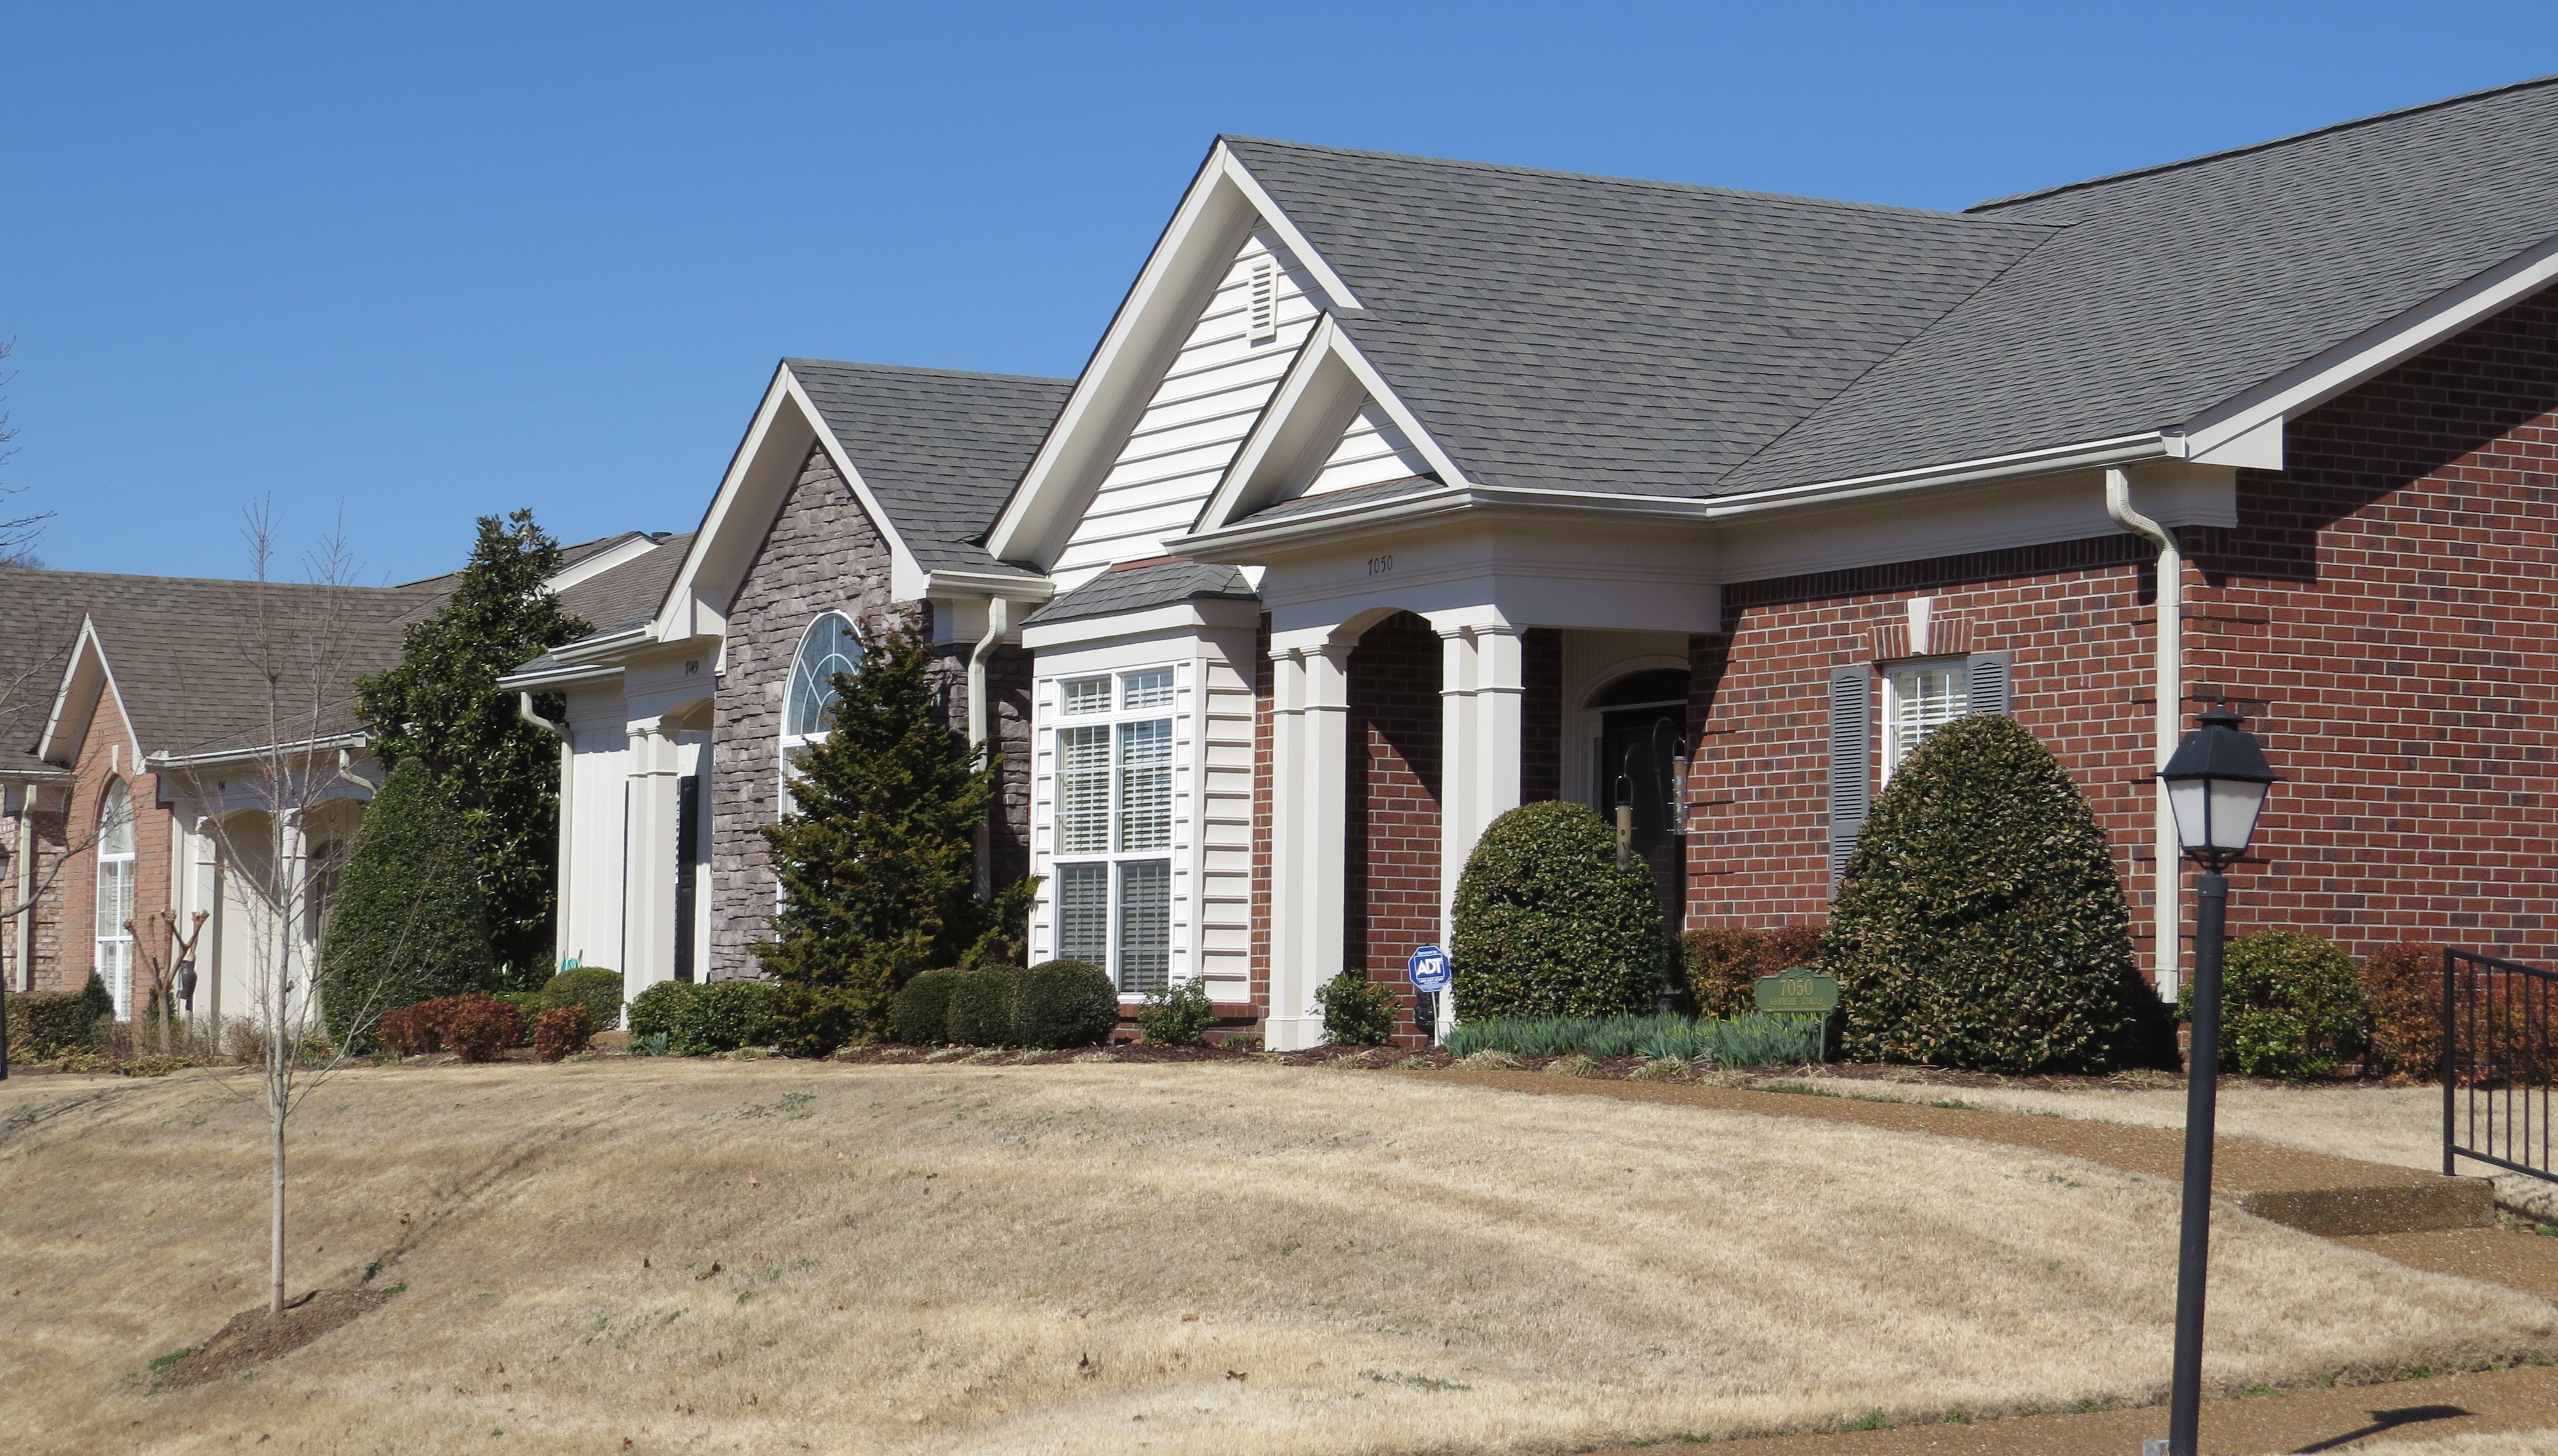 55 adult communities white house tennessee